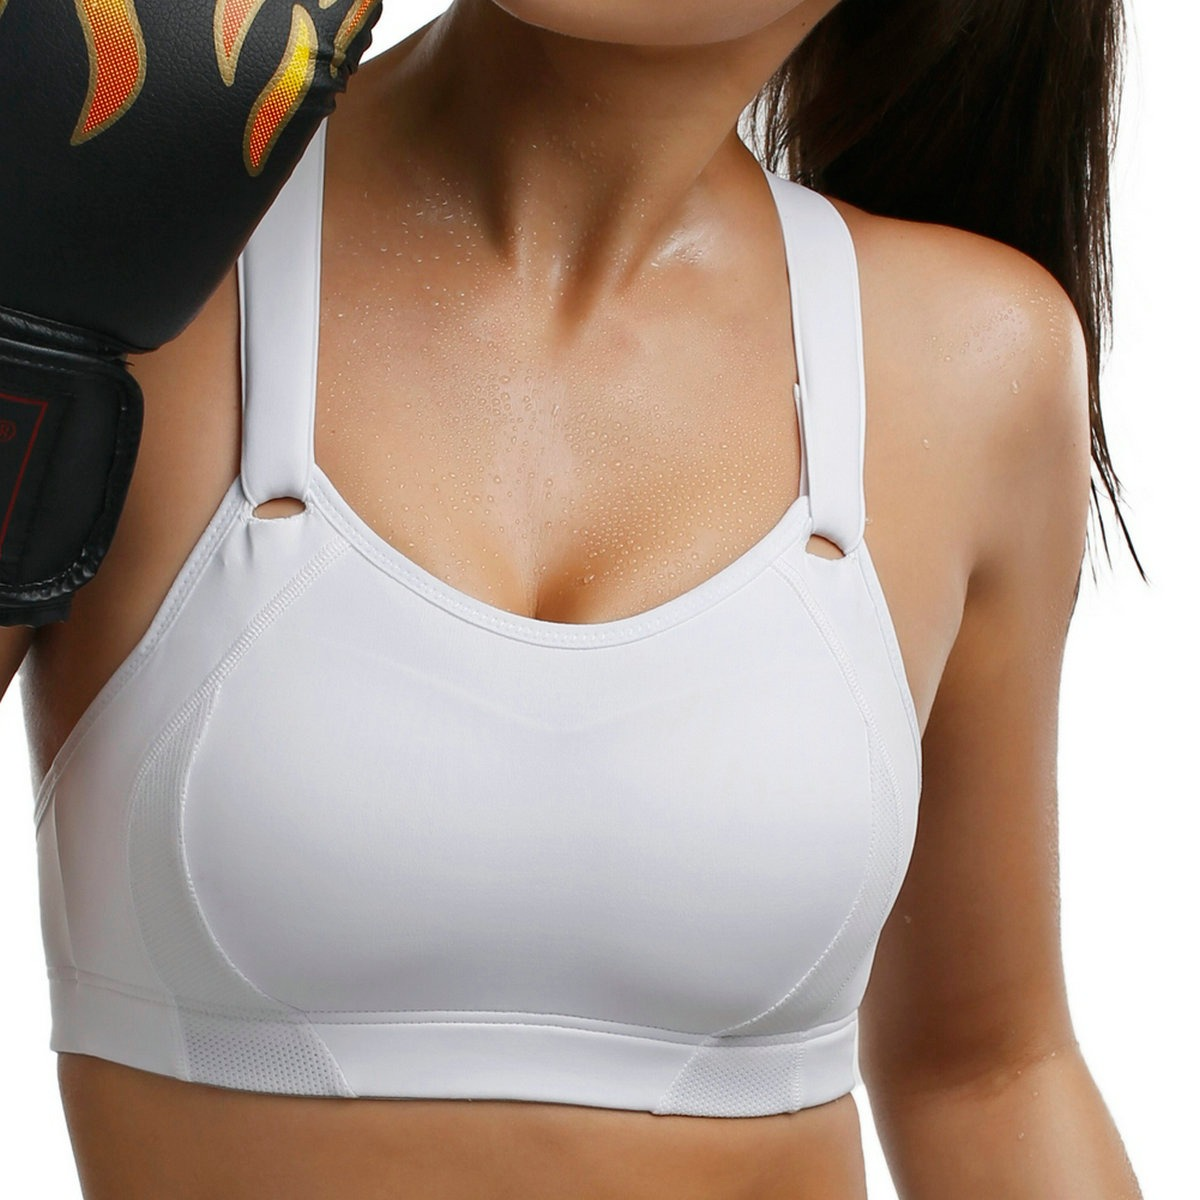 3b9b2d7c7 New Women s High Impact Ultra Supportive Full Coverage Racerback Active Bra  Big Size 32-42 B C D DD E